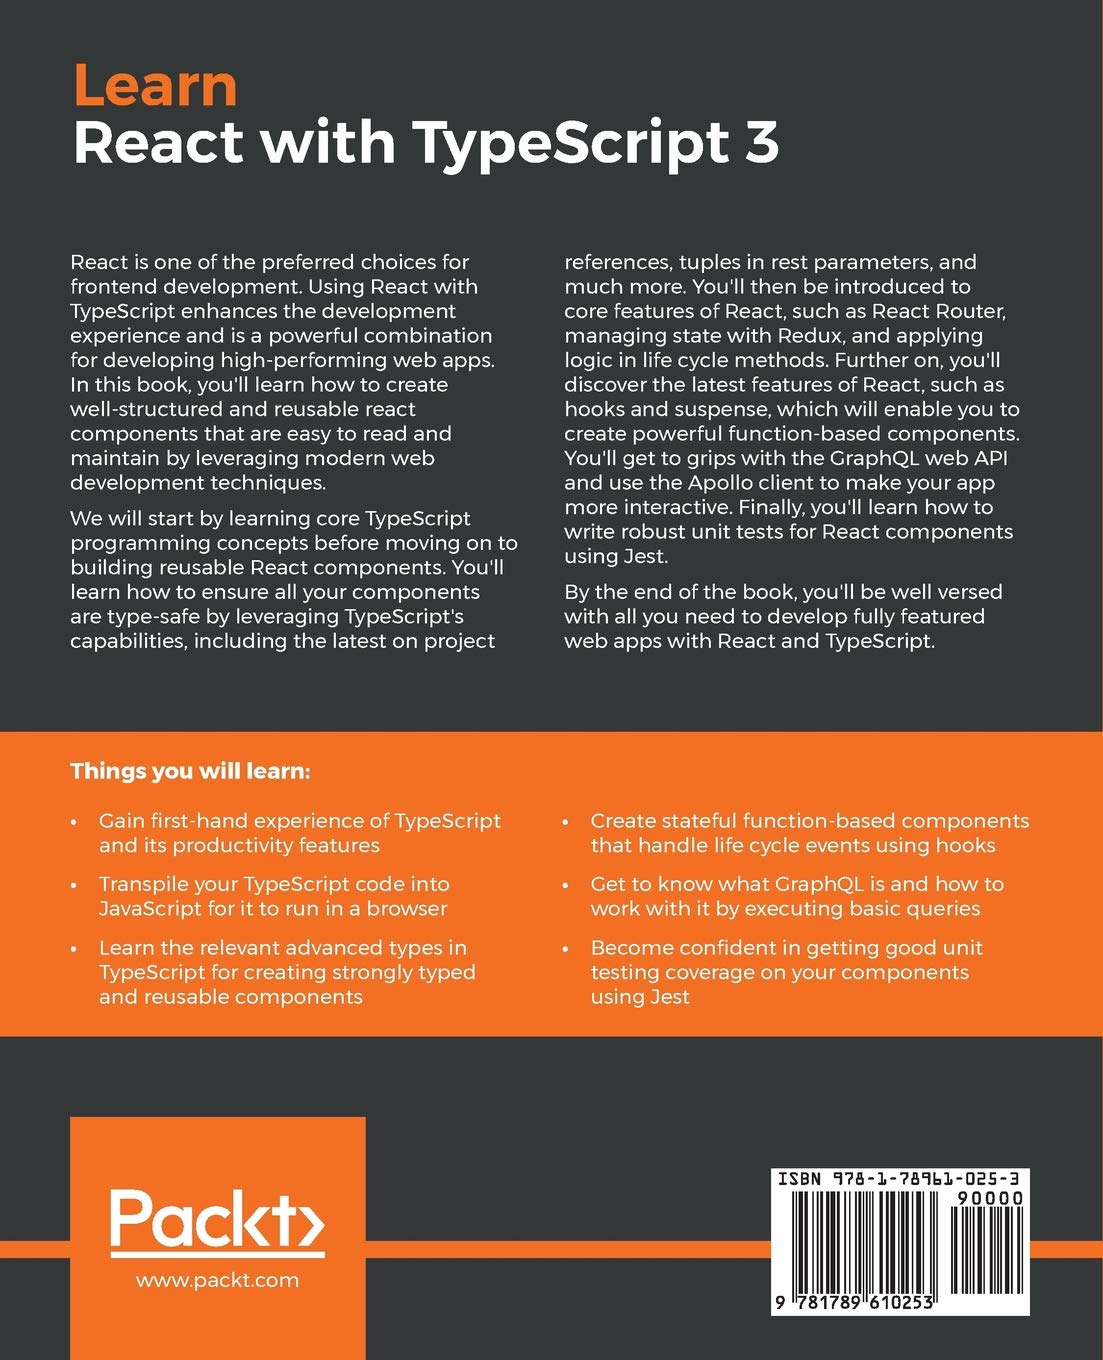 Learn React with TypeScript 3: Beginner's guide to modern React web